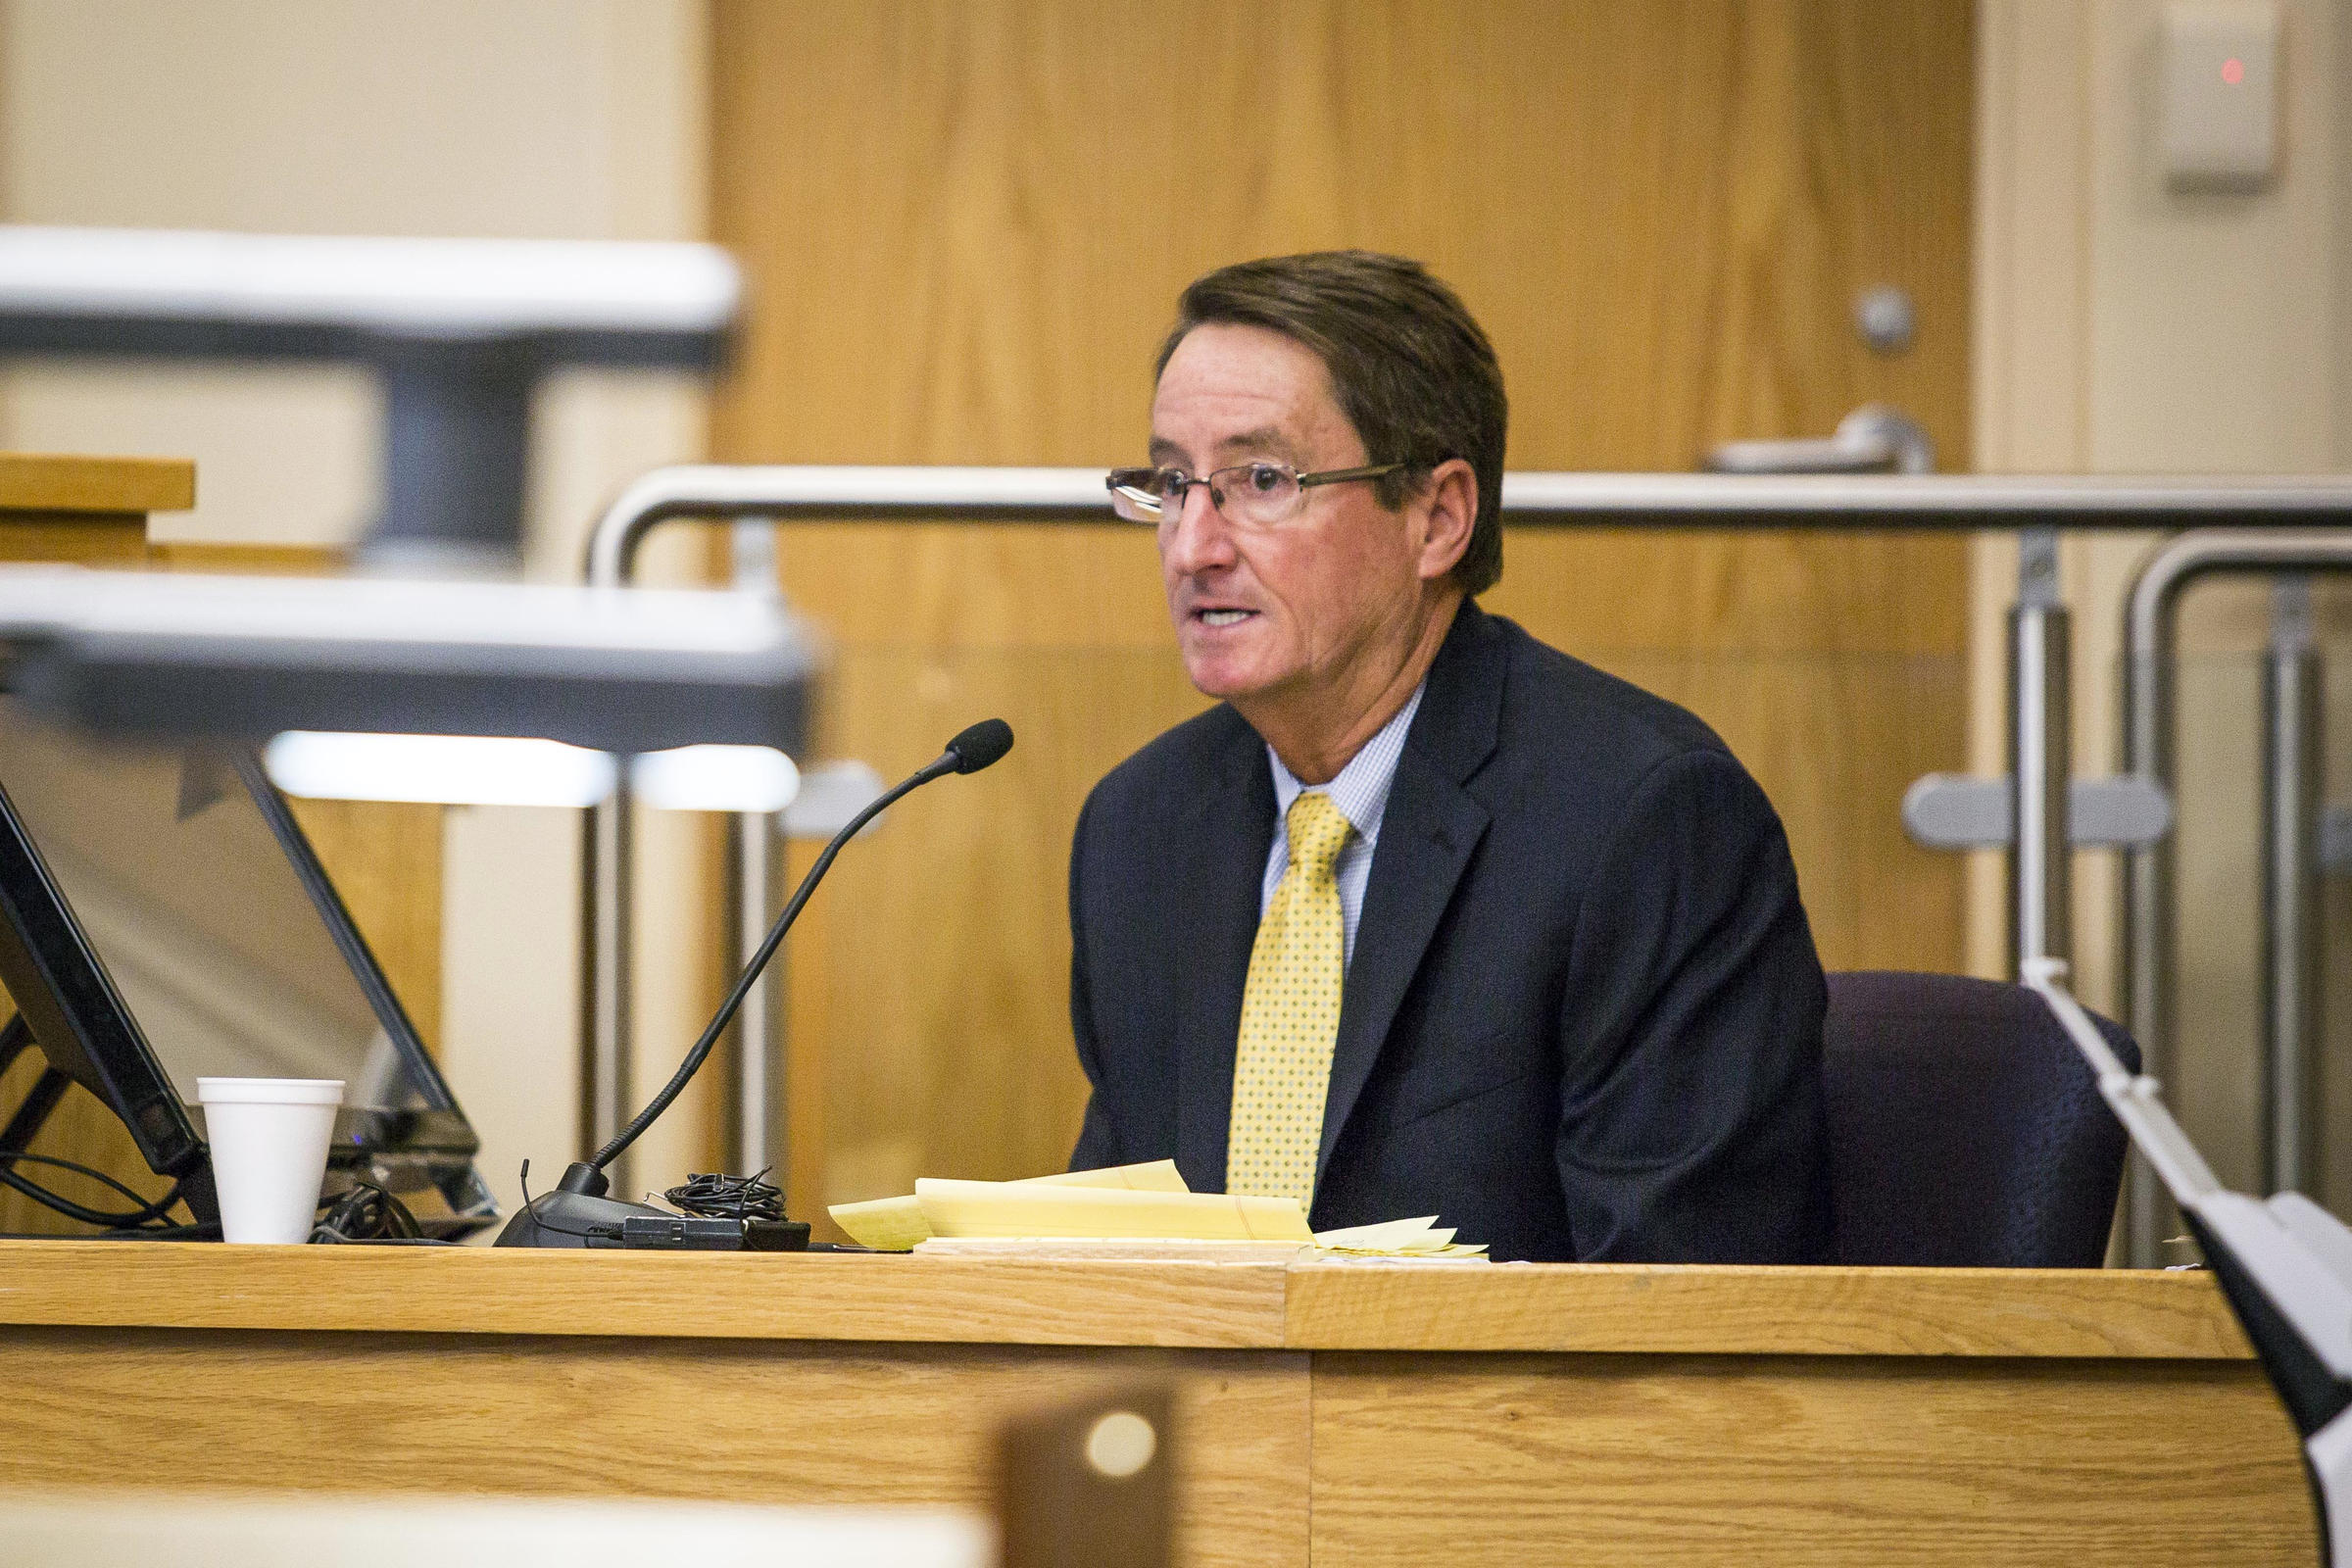 Expert witness Jeffery Noble takes the stand as the second witness in the trial of former Albuquerque police officers Dominique Perez and Keith Sandy who are charged with the 2014 murder of James Boyd in Bernalillo County court Monday, September 19, 2016 in Albuquerque, NM. (AP Photo/Juan Labreche)